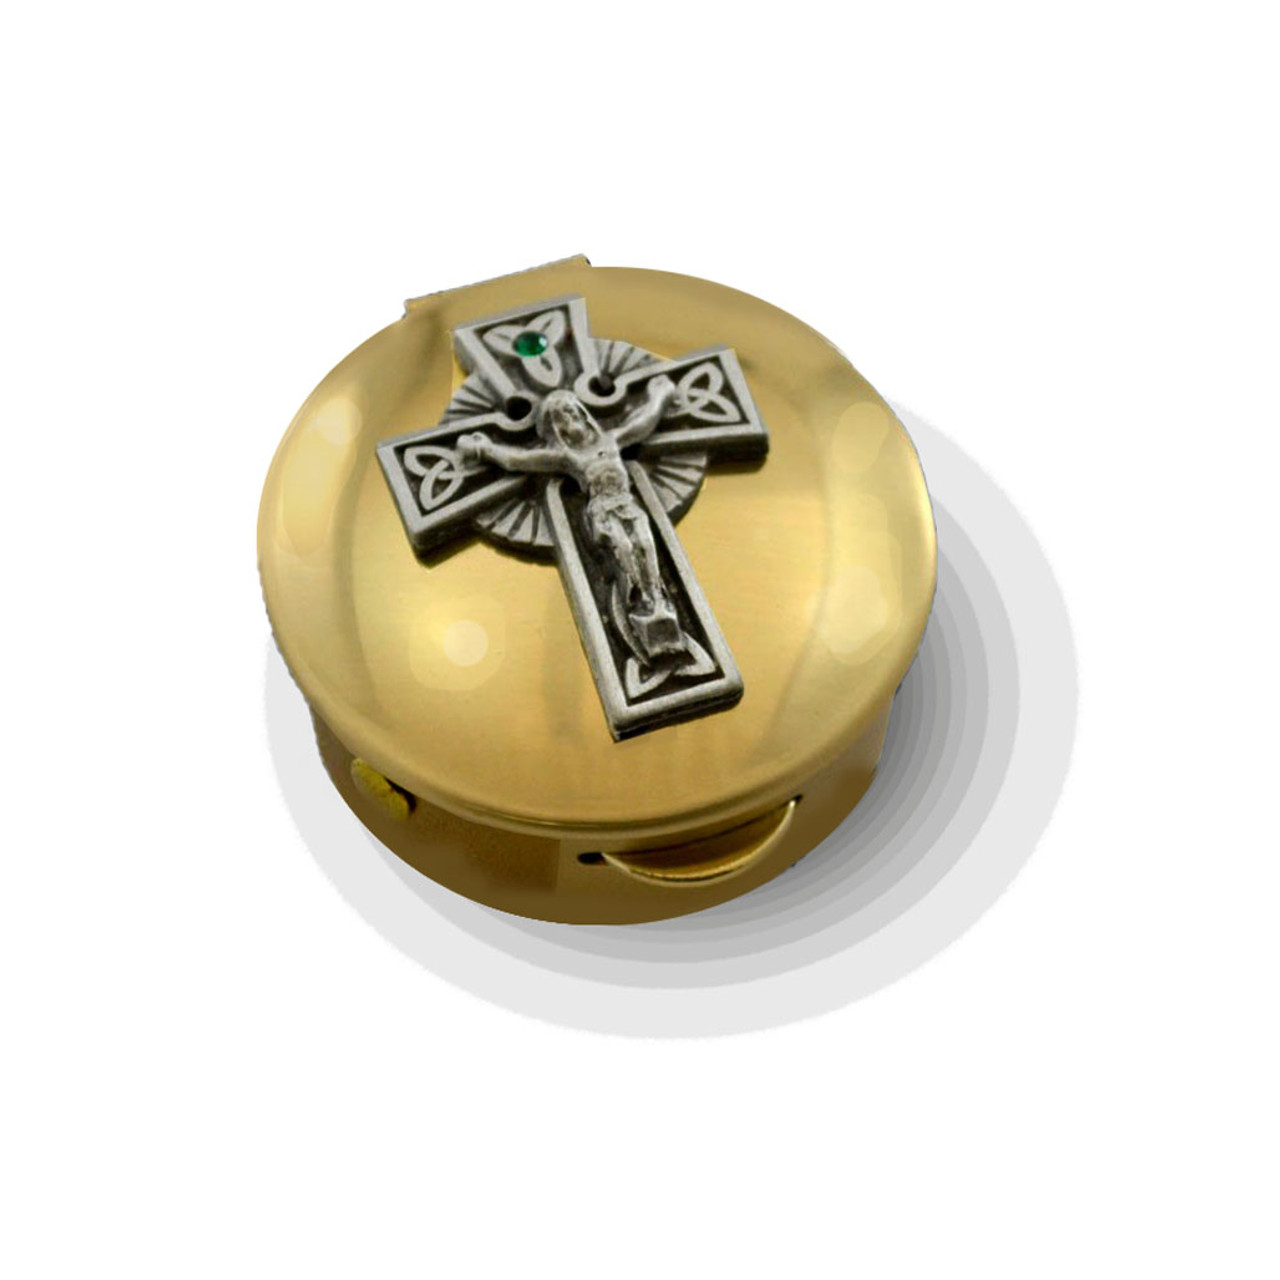 Pyx with Crucifix and Green Stone 6-9 Hosts